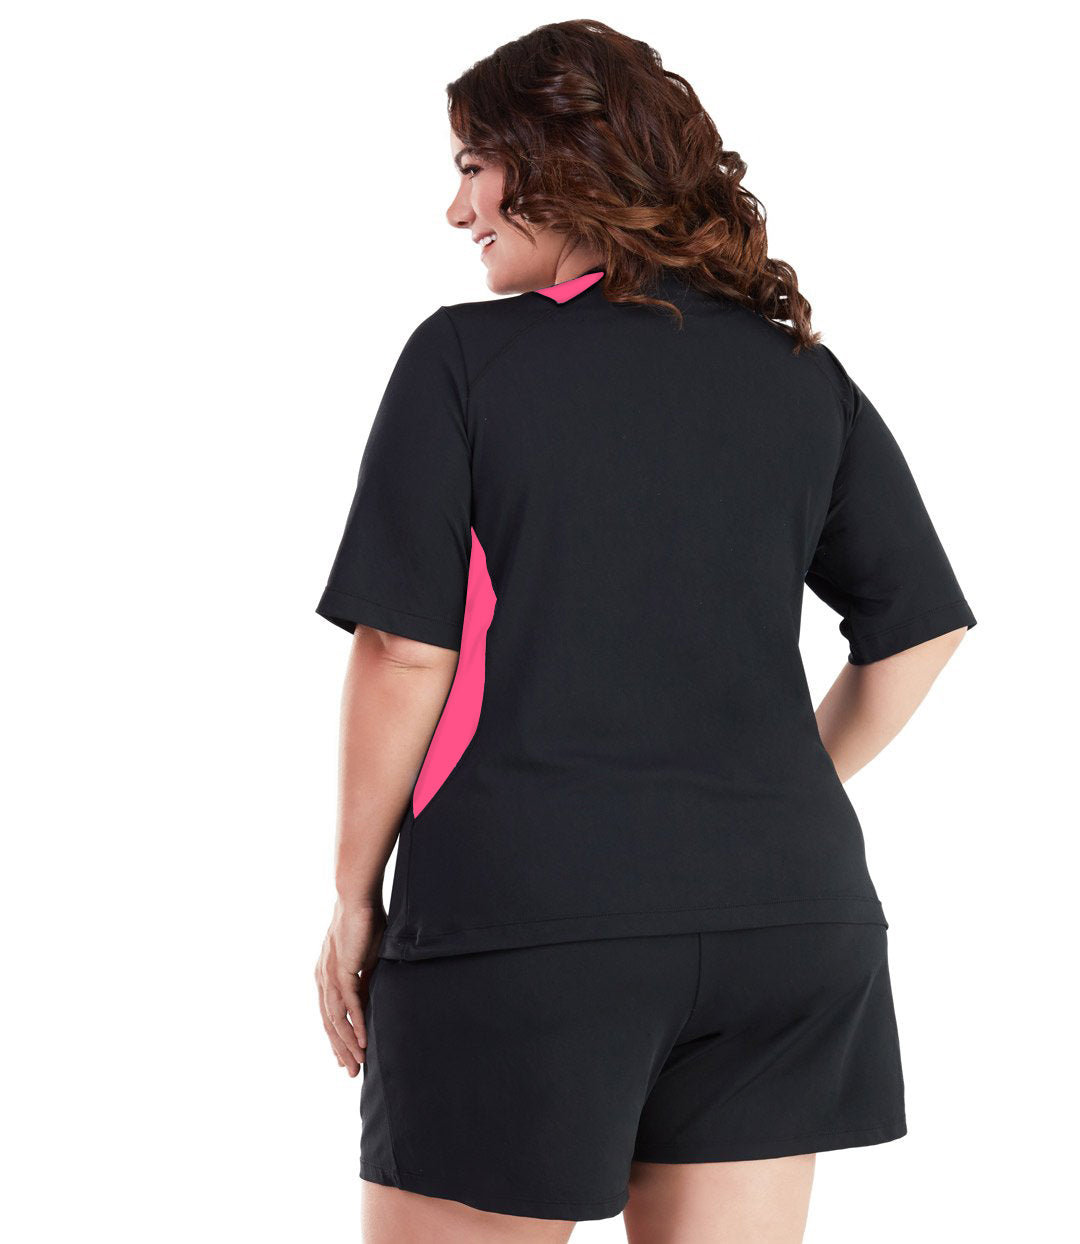 AquaSport Color Block Swim Tee Pink and Black-Swim Tops-SFO Apparel-XL-BLACK/PINK-JunoActive